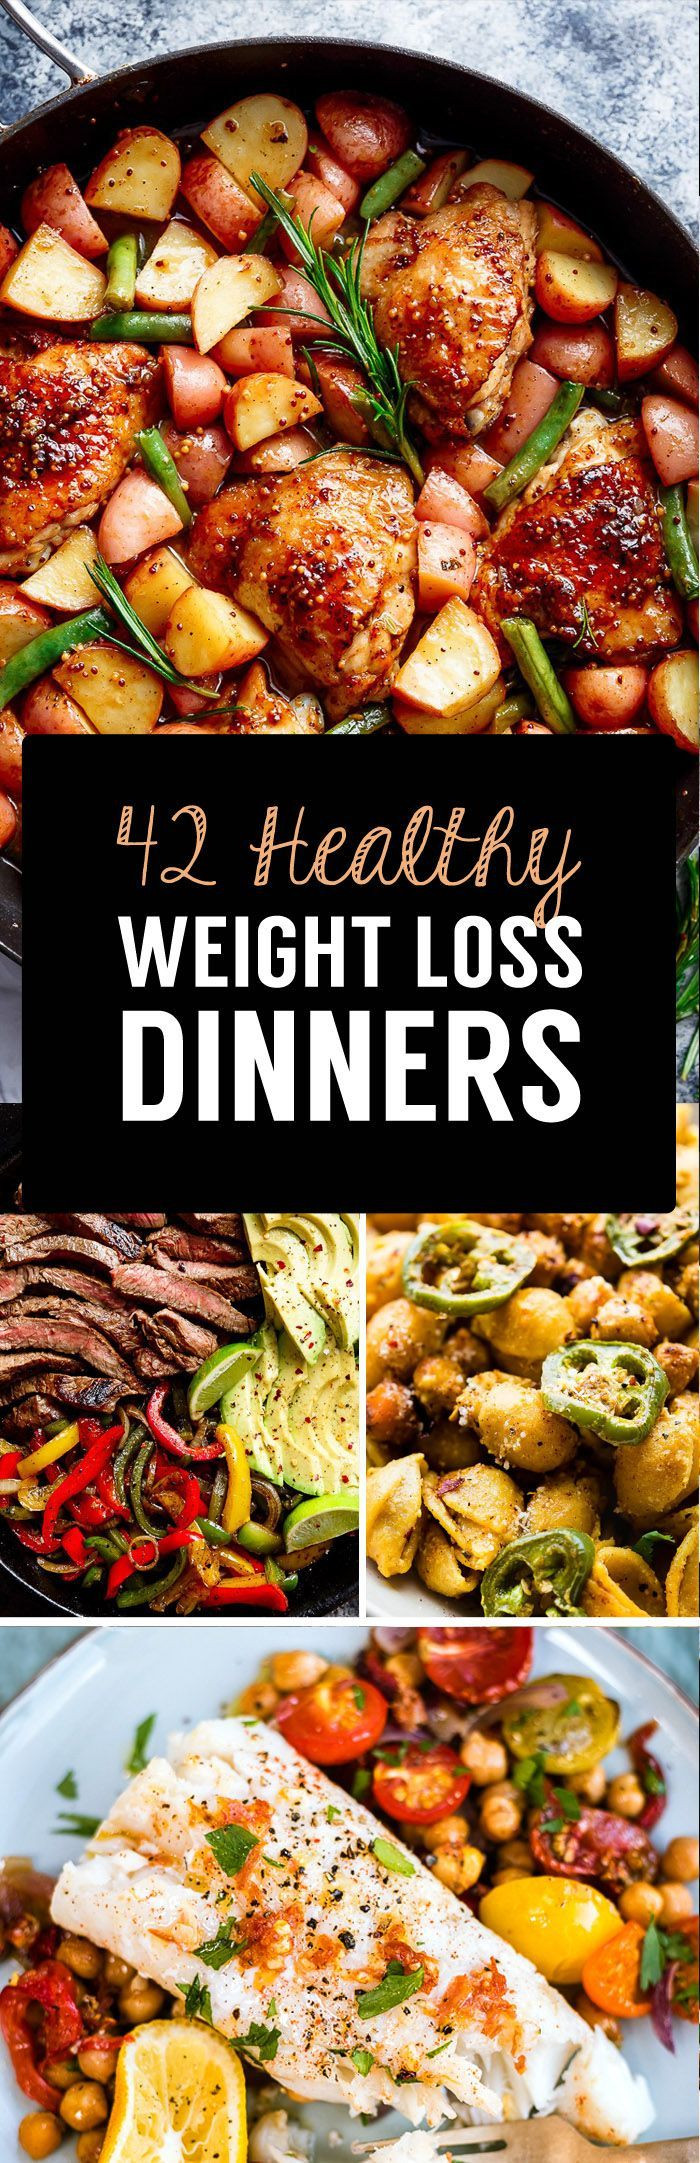 Healthy Meal Recipes For Weight Loss  Best 25 Healthy recipes ideas on Pinterest